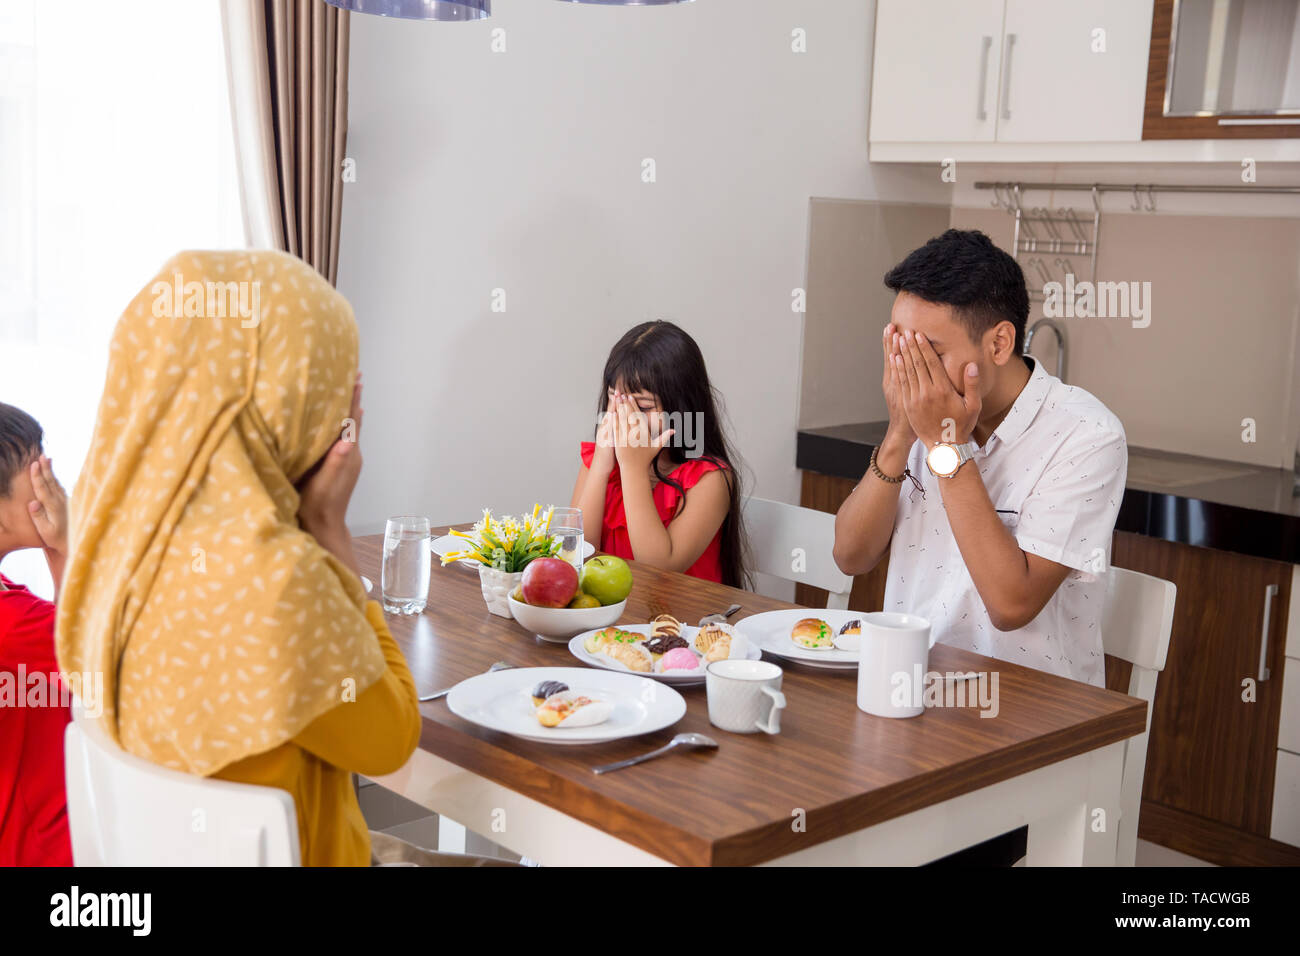 happy asian muslim family praying before having a meal together at home - Stock Image